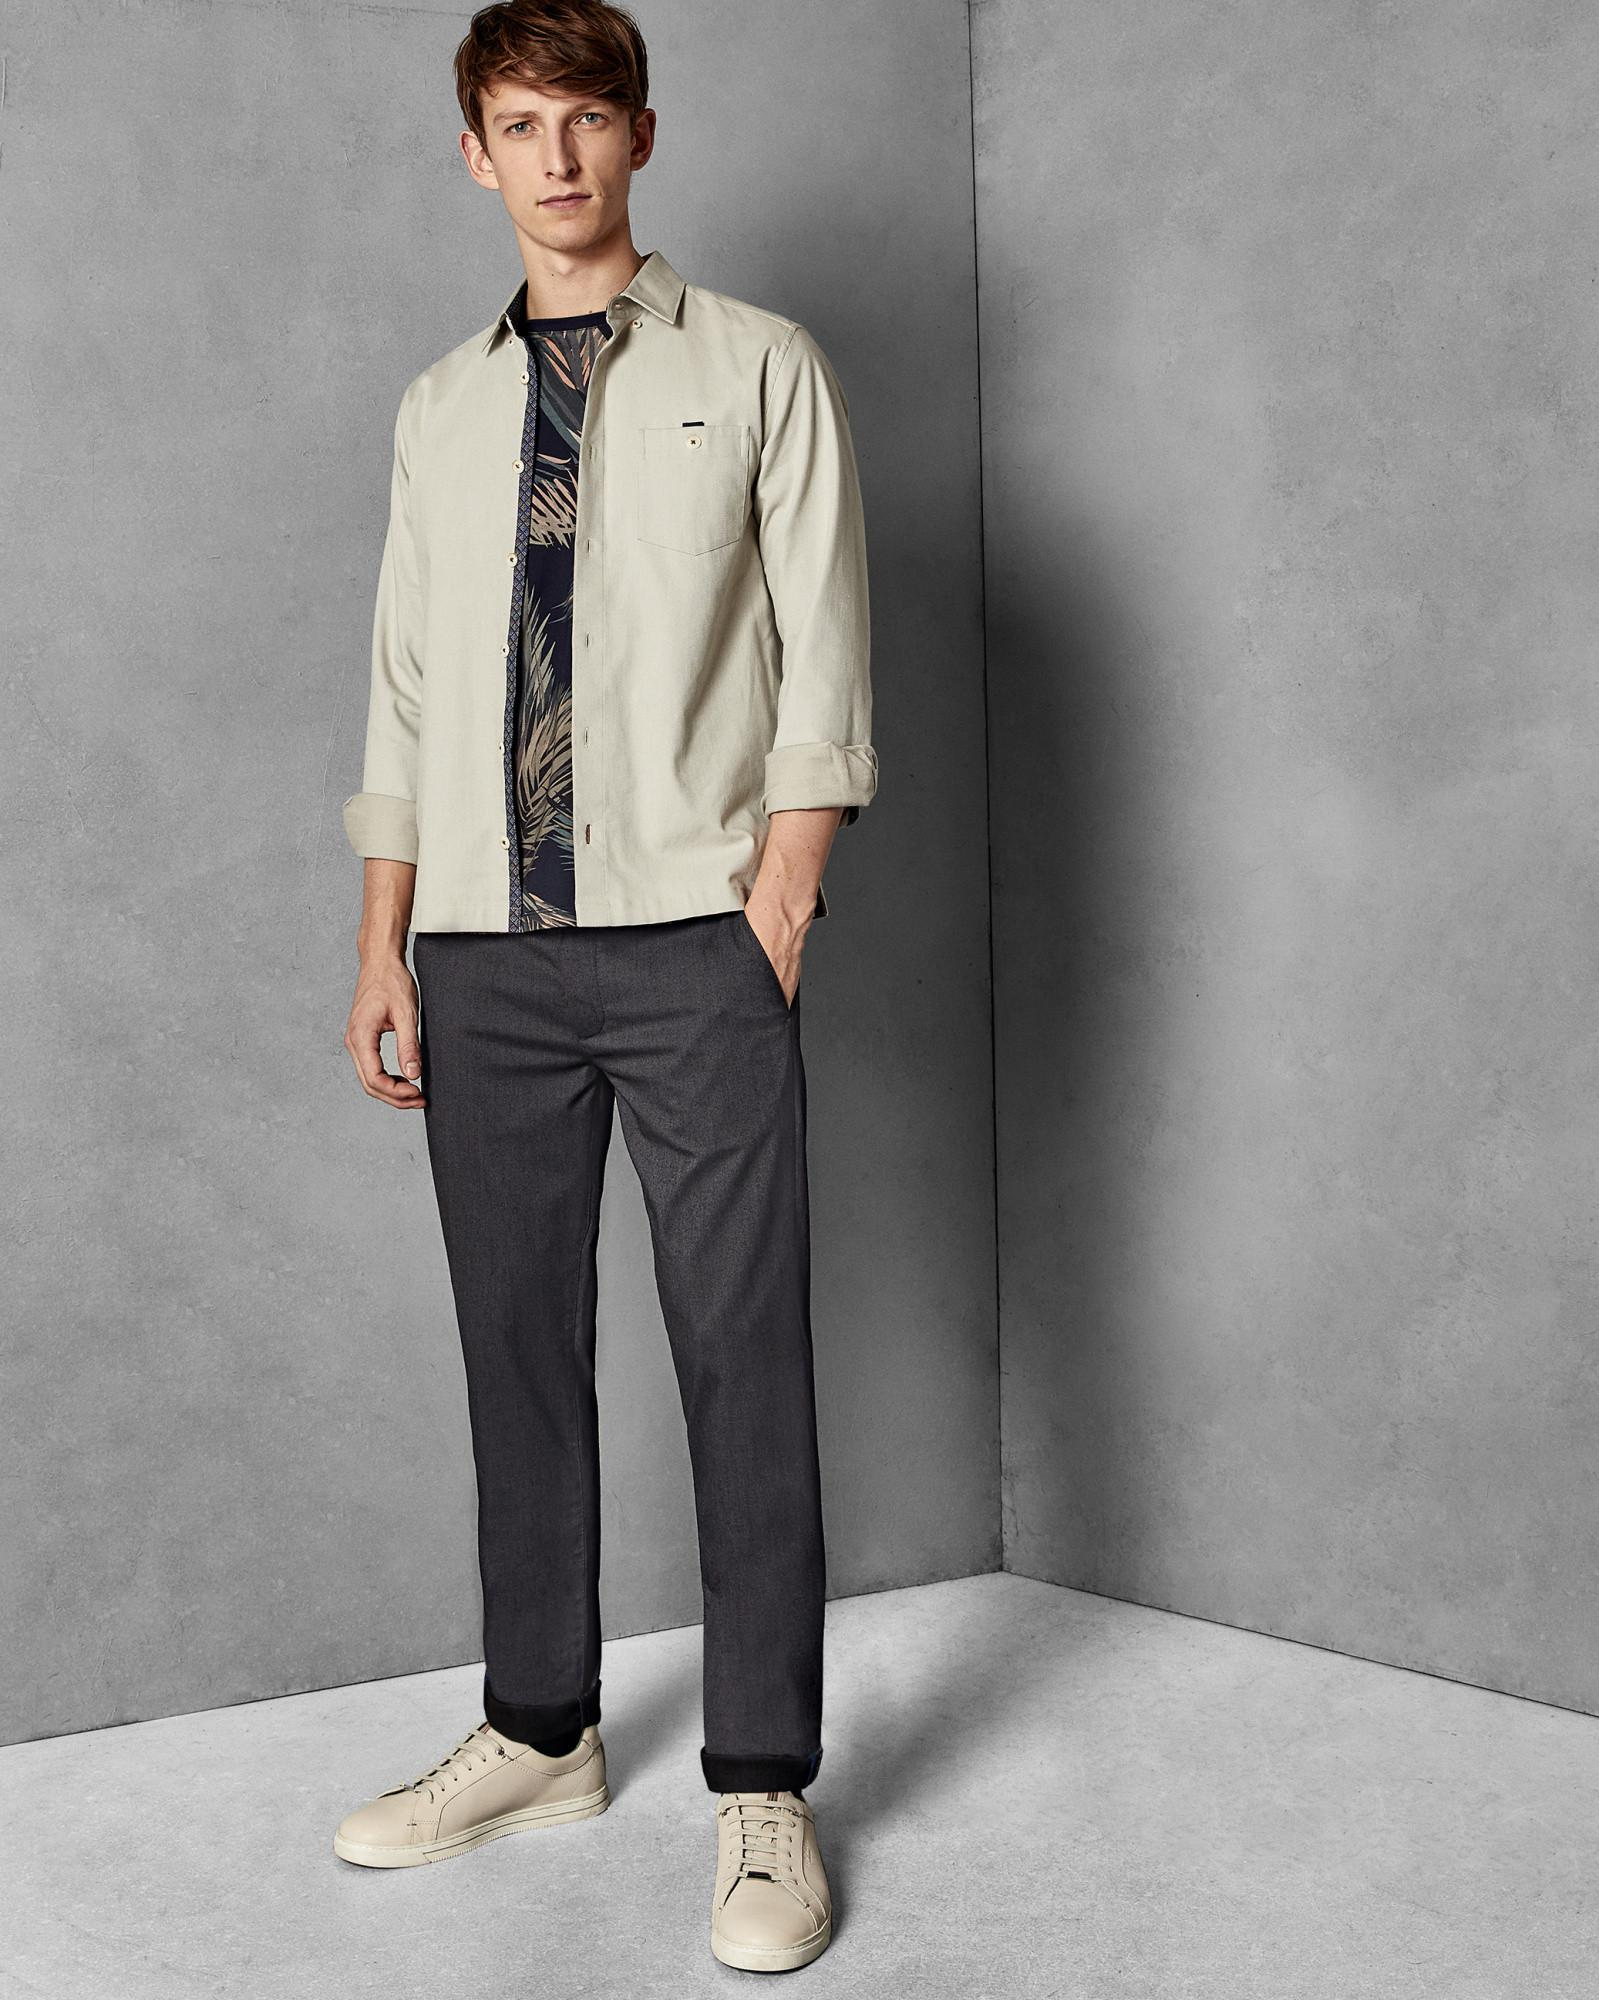 9950373f33dd5b Lyst - Ted Baker Slim Fit Trousers in Gray for Men